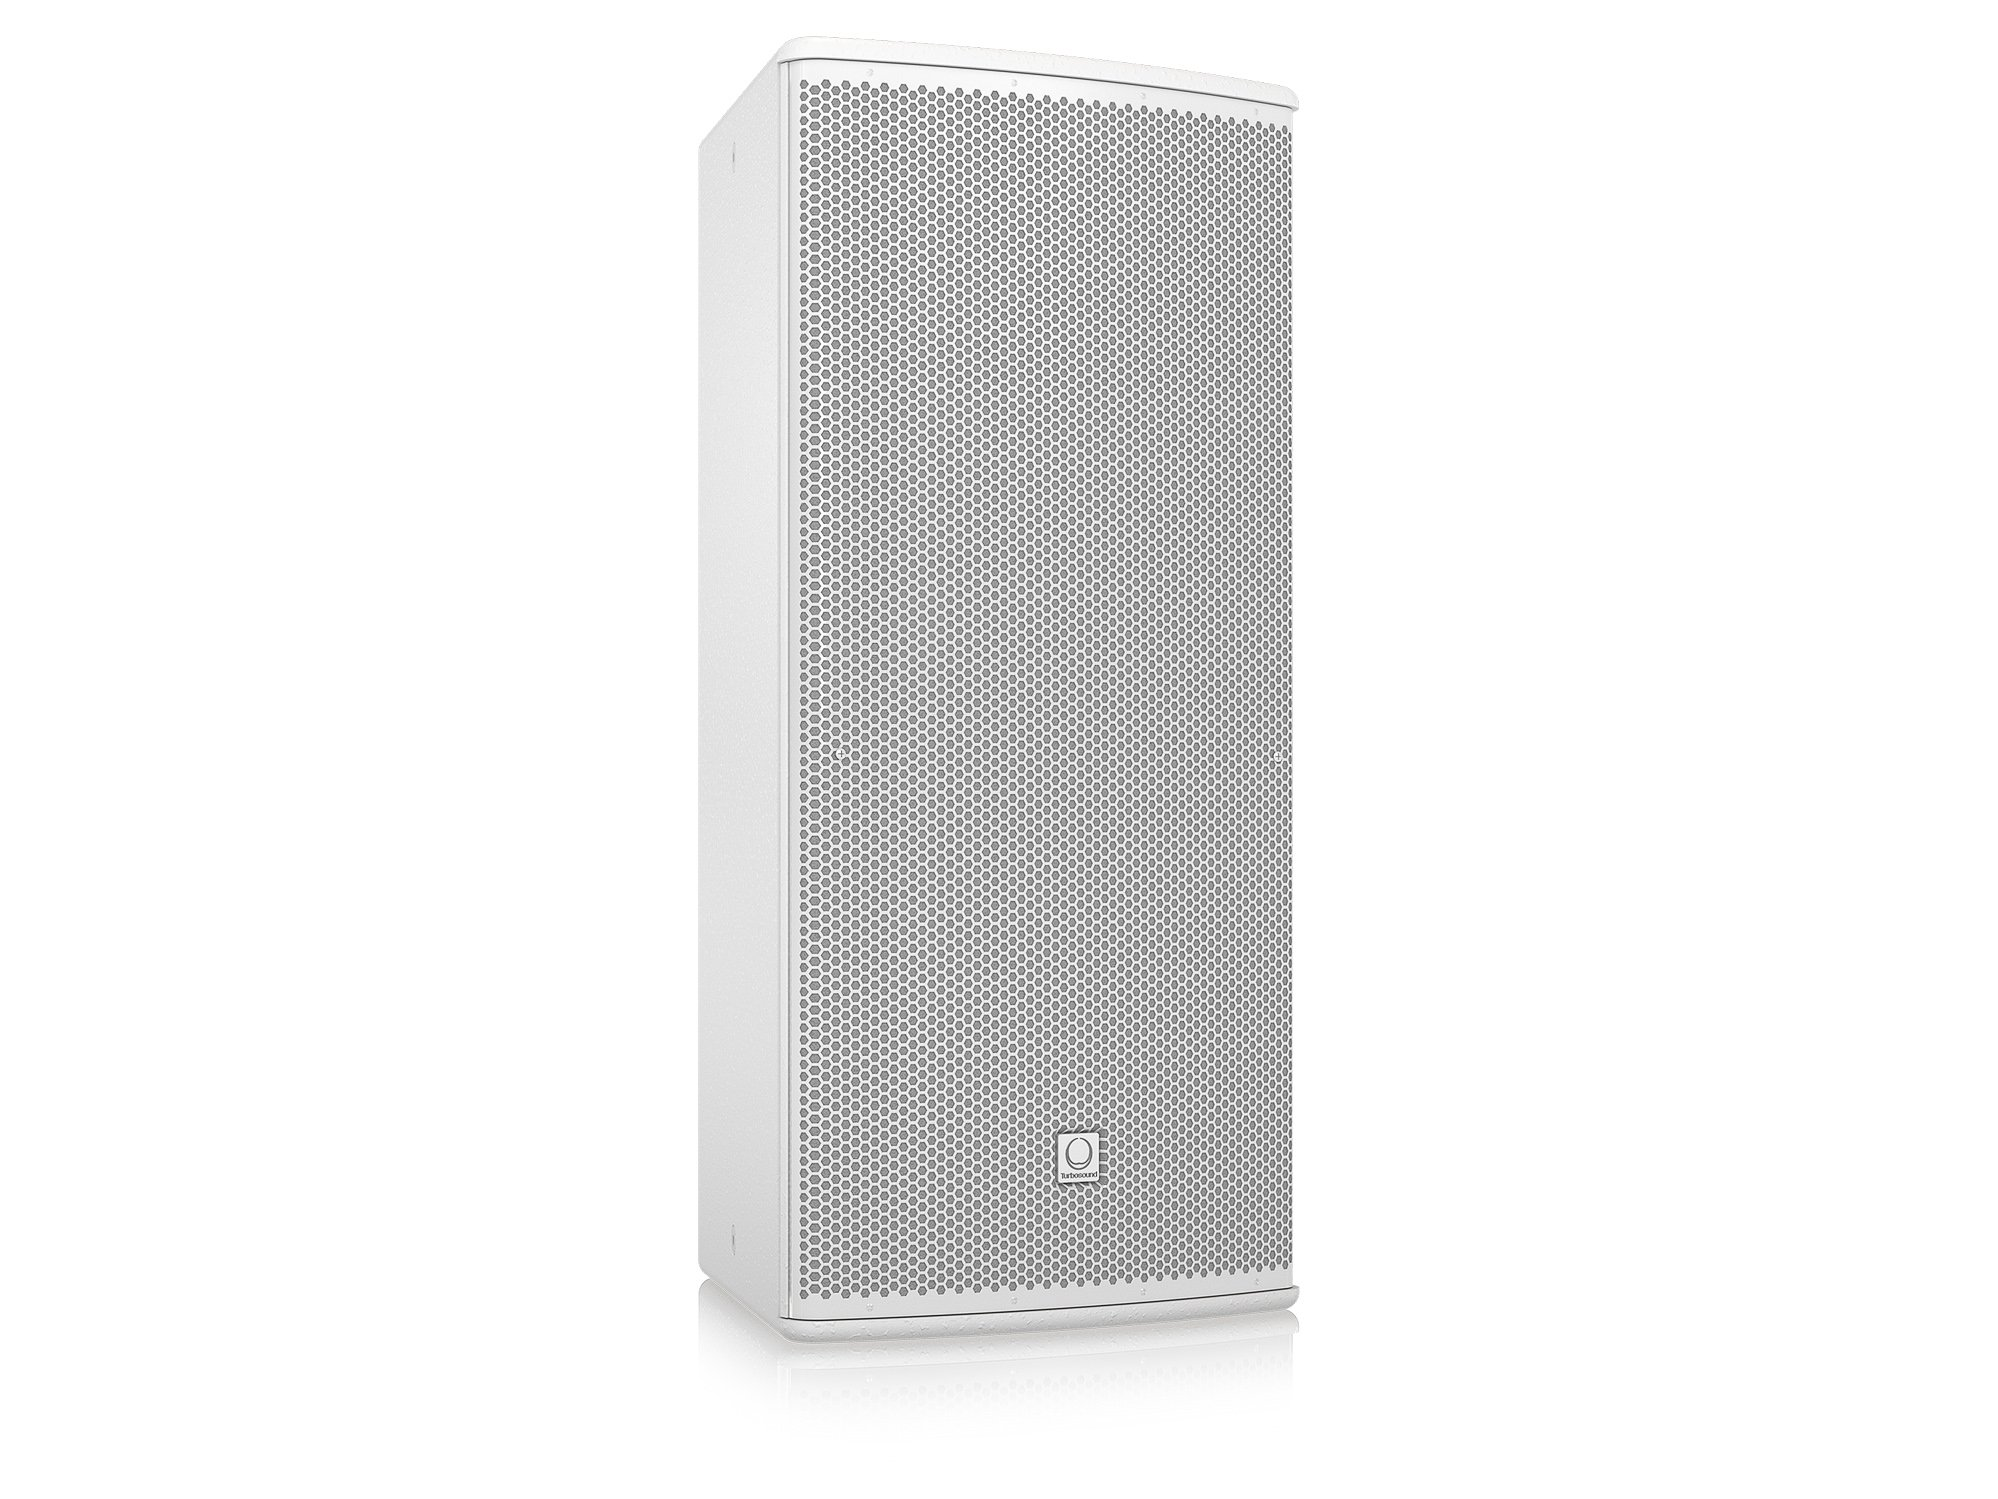 """Turbosound TCS-122/96-R-WH 12"""" 600W (8 Ohms) Weather Resistant 2-Way Full-Range Passive/Bi-Amp Loudspeaker with 90°x60° Dispersion in White TCS122/96-R-WH"""